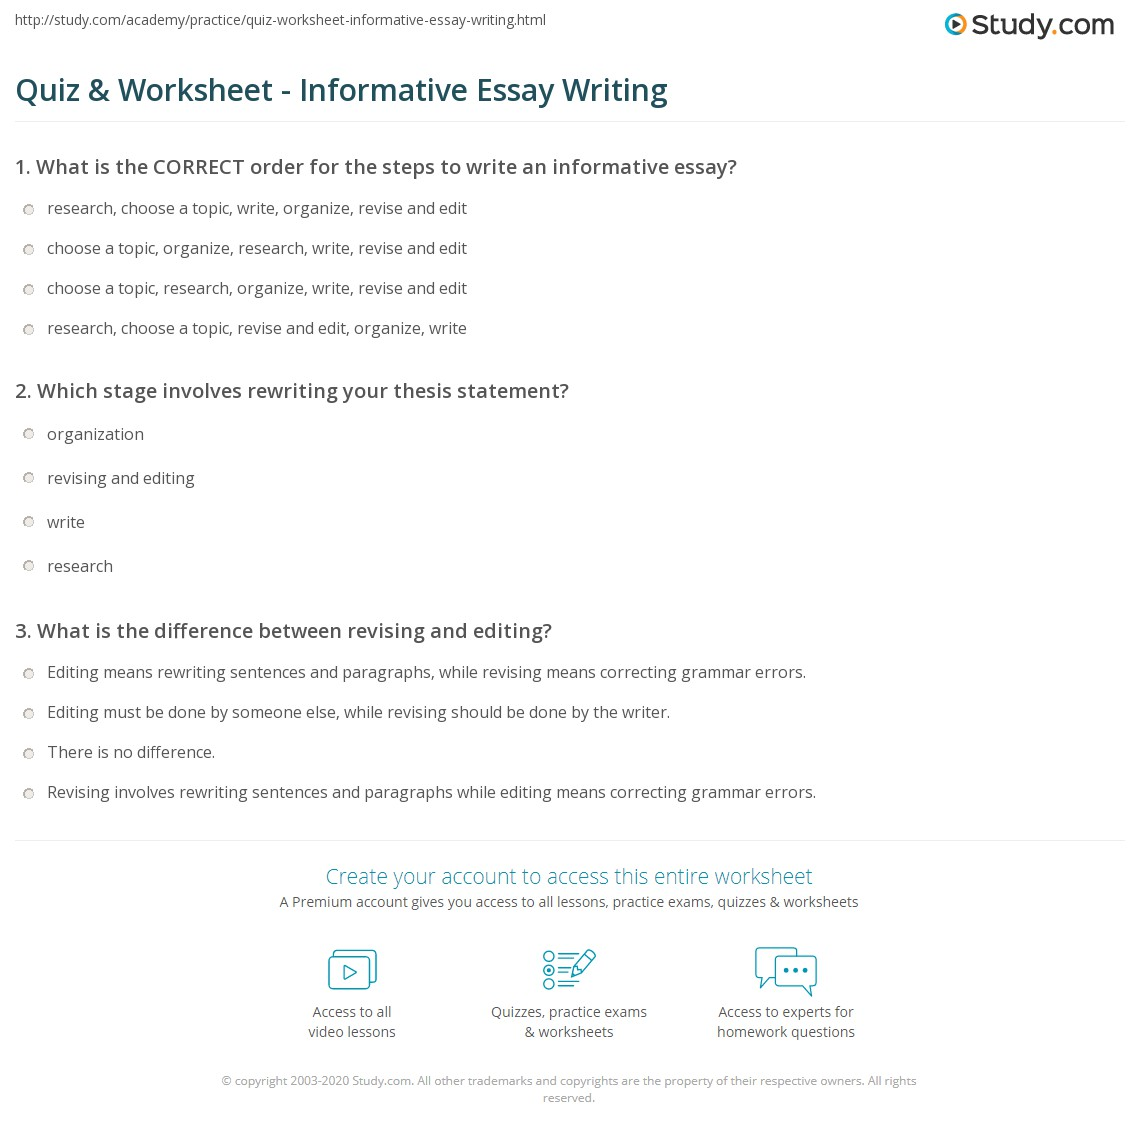 quiz  worksheet  informative essay writing  studycom print how to write an informative essay worksheet